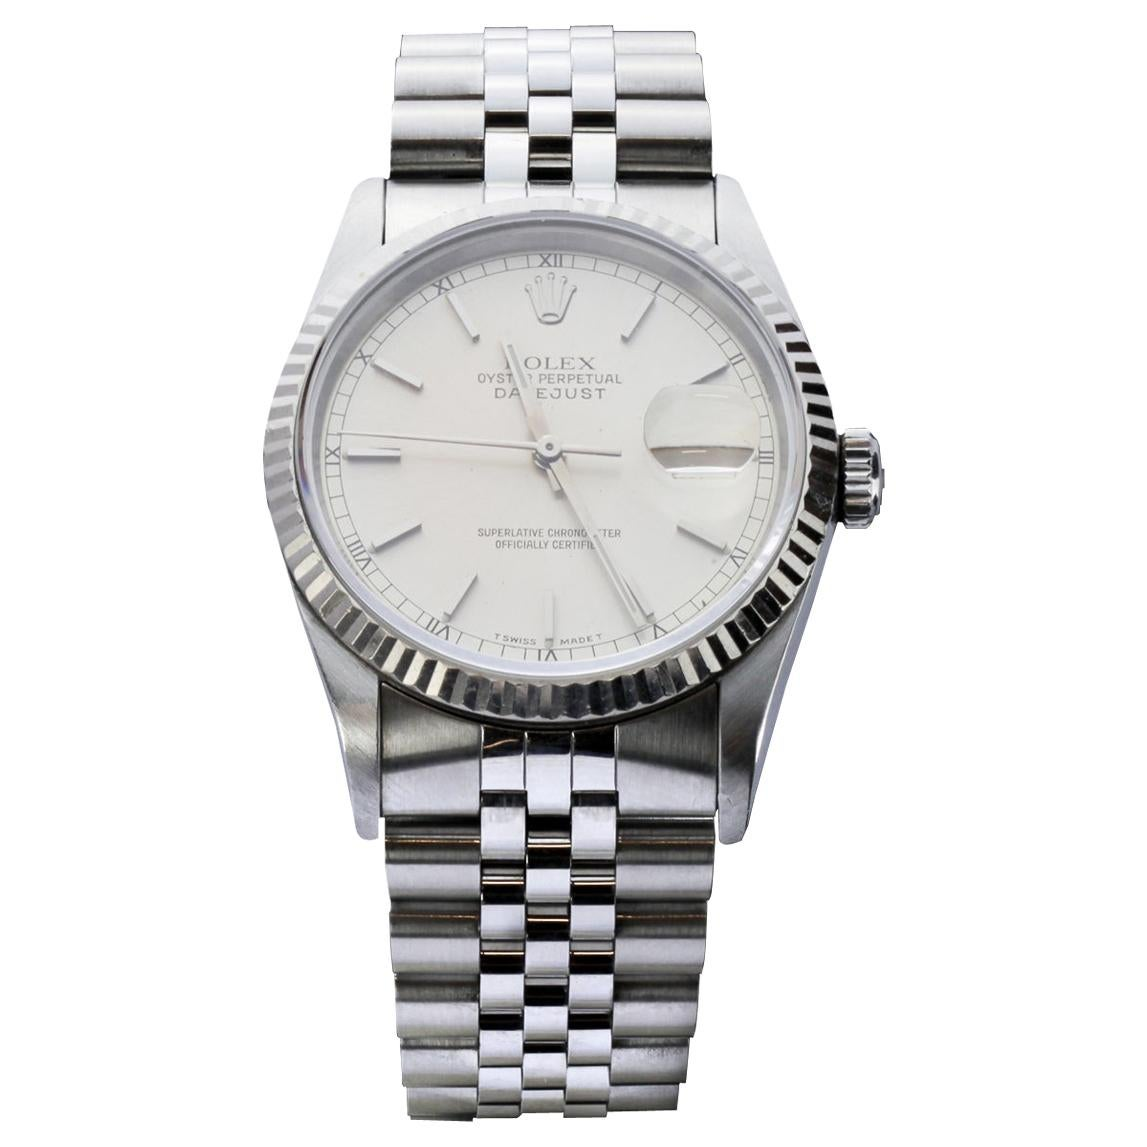 Rolex Oyster Perpetual DateJust Ref 16234